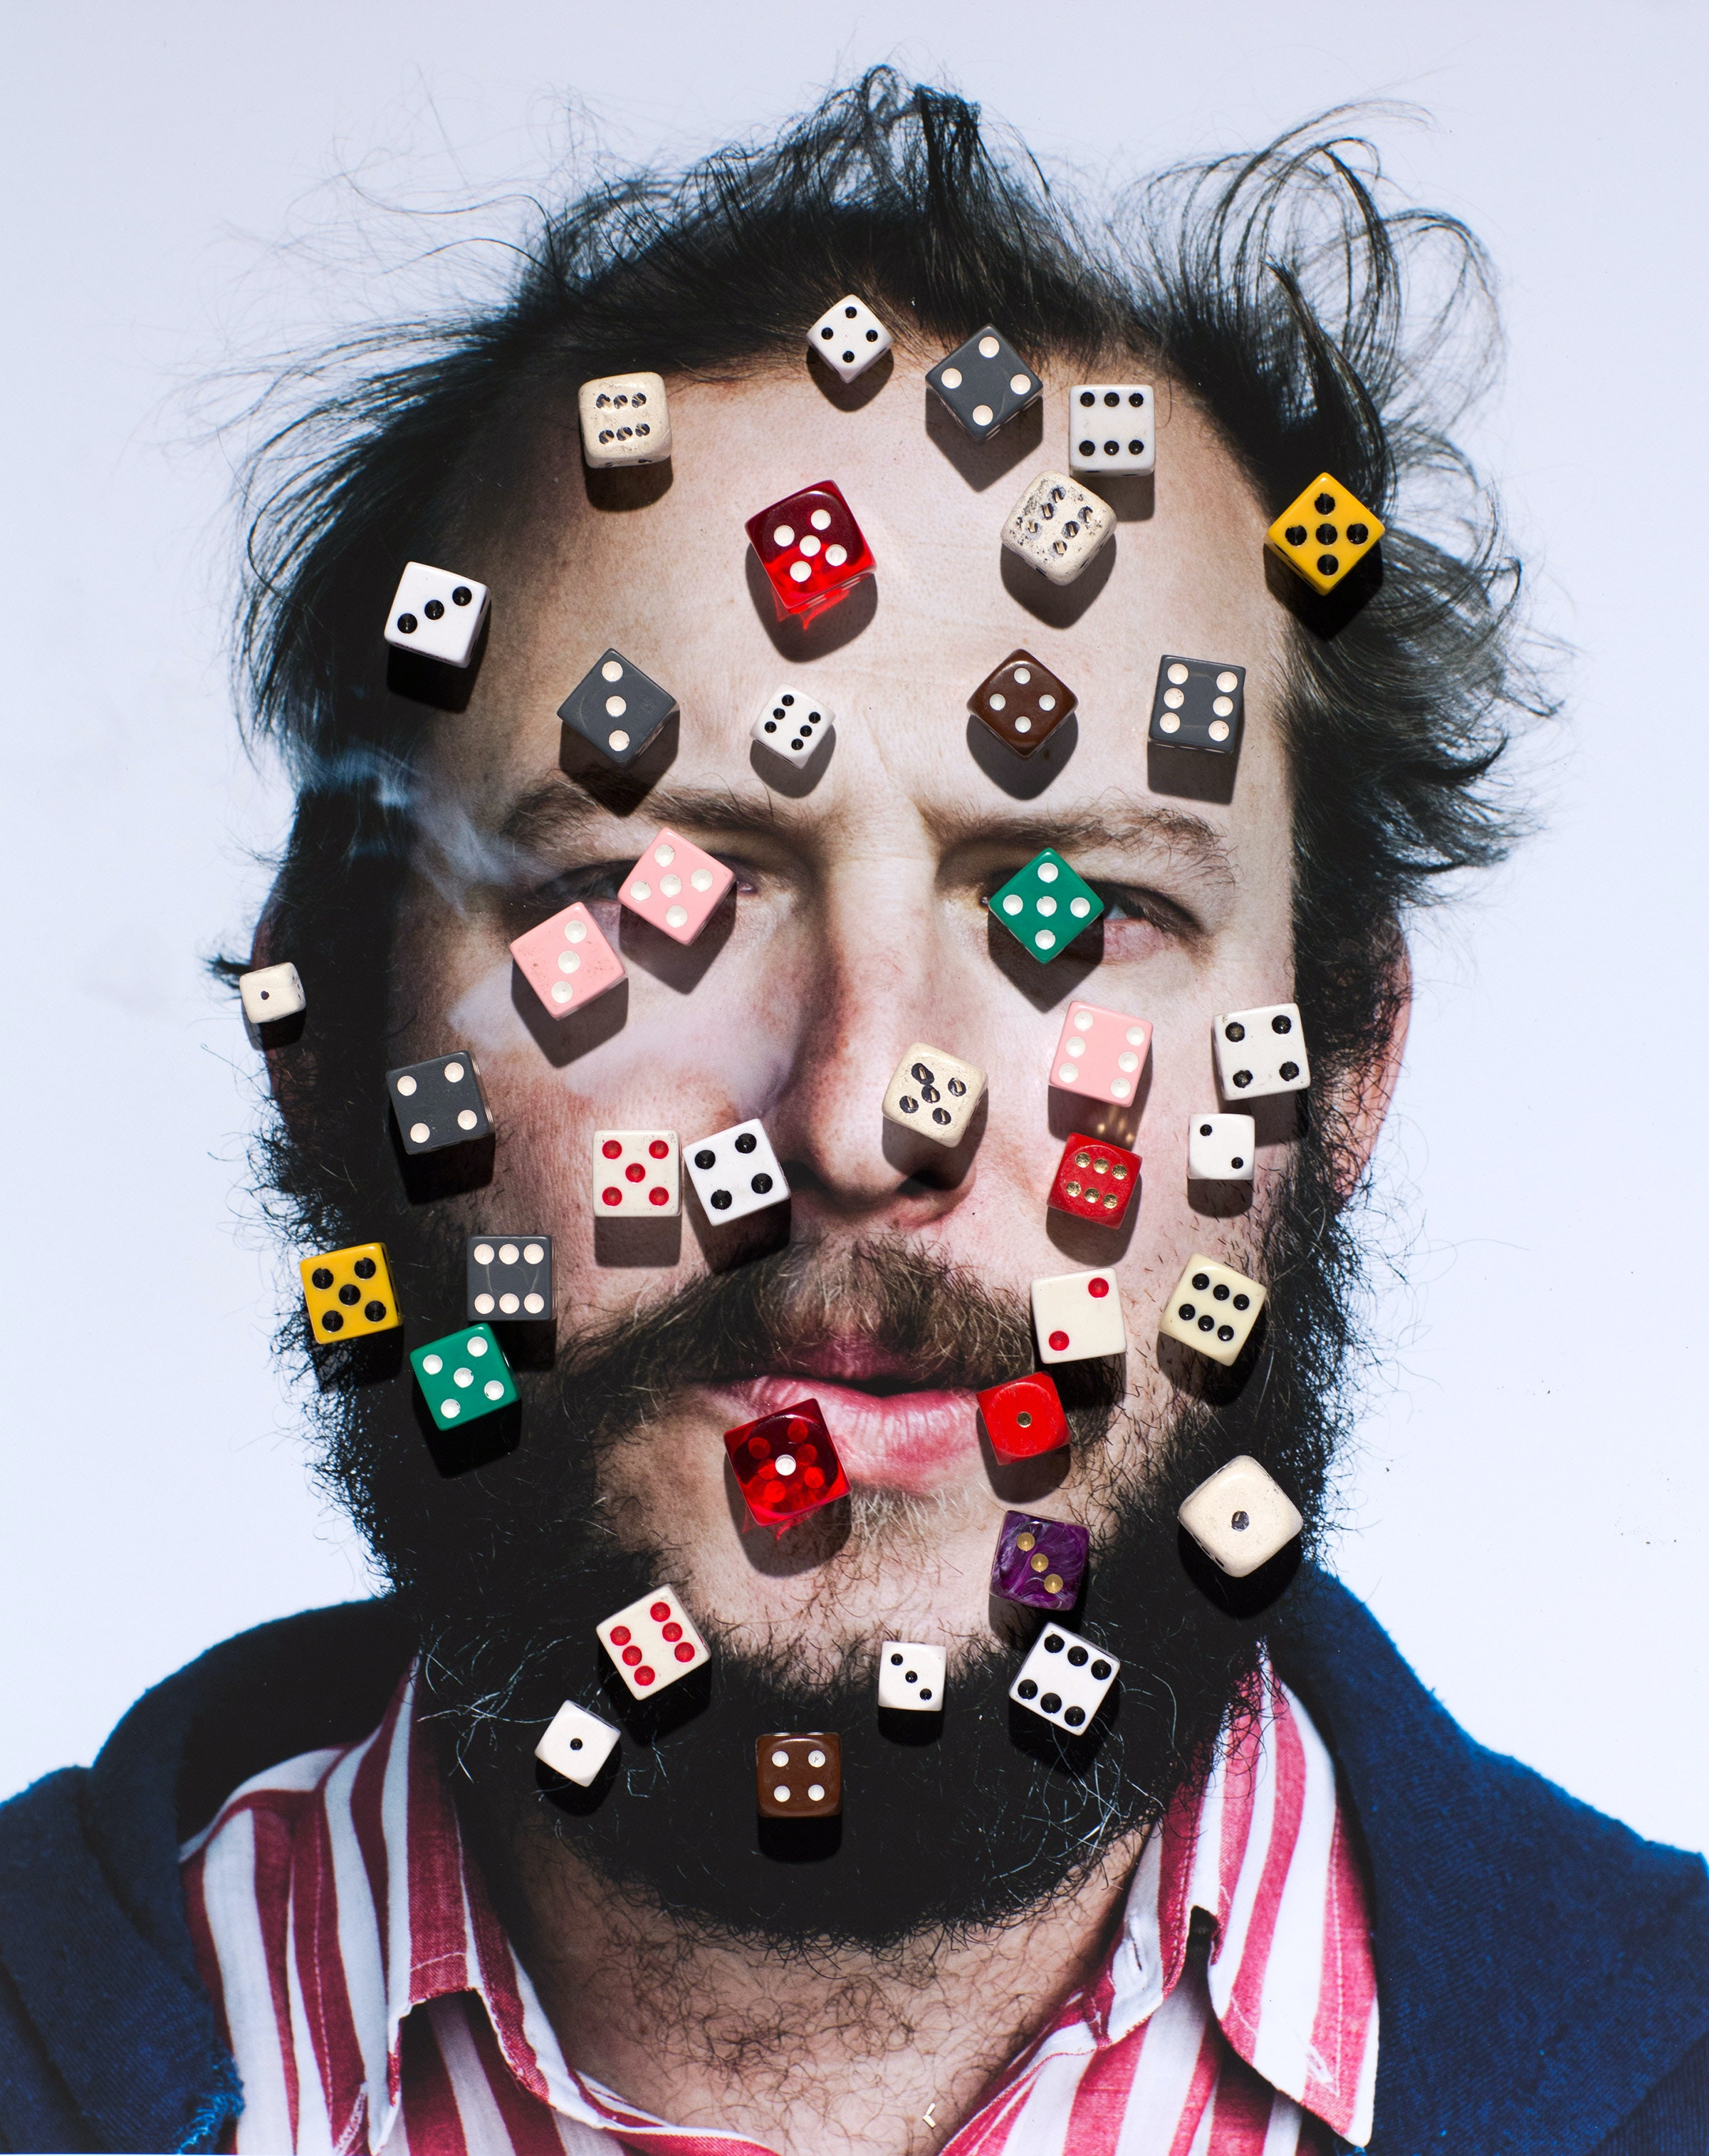 picture of a man with many dice on top